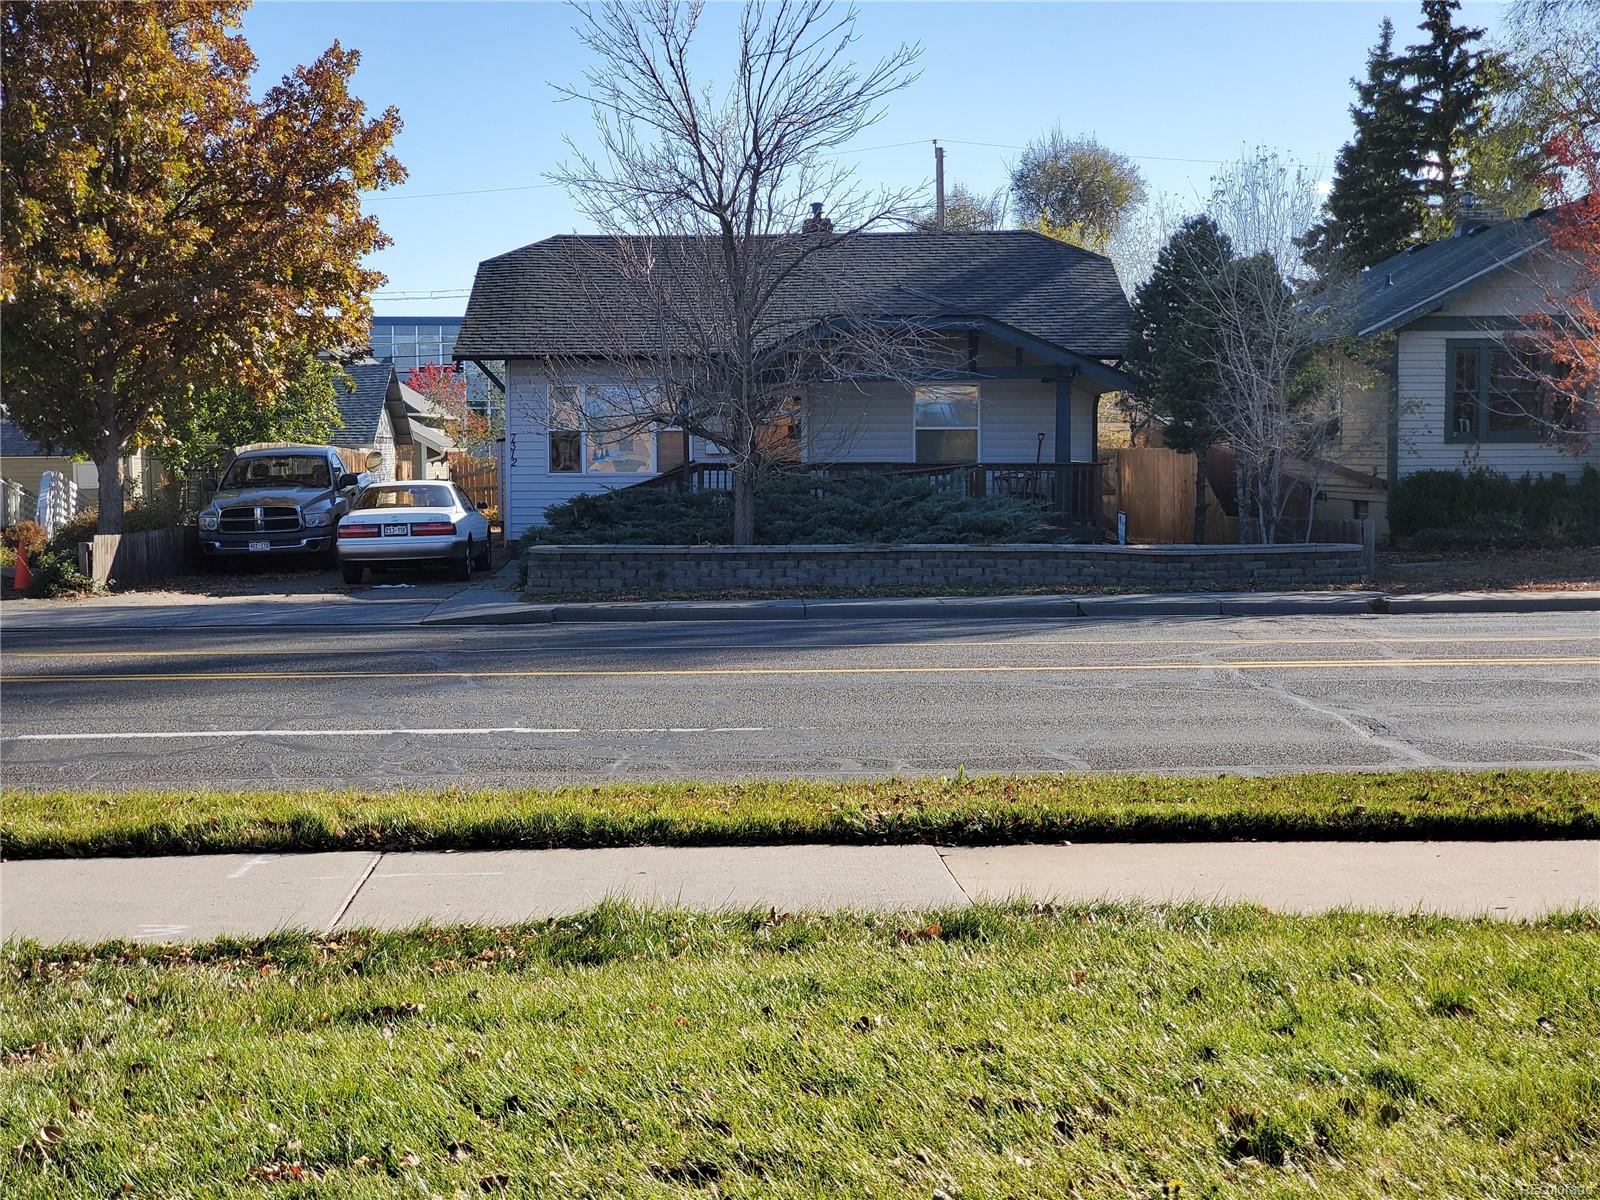 7312 Ralston Road, Arvada, CO 80002 - Arvada, CO real estate listing